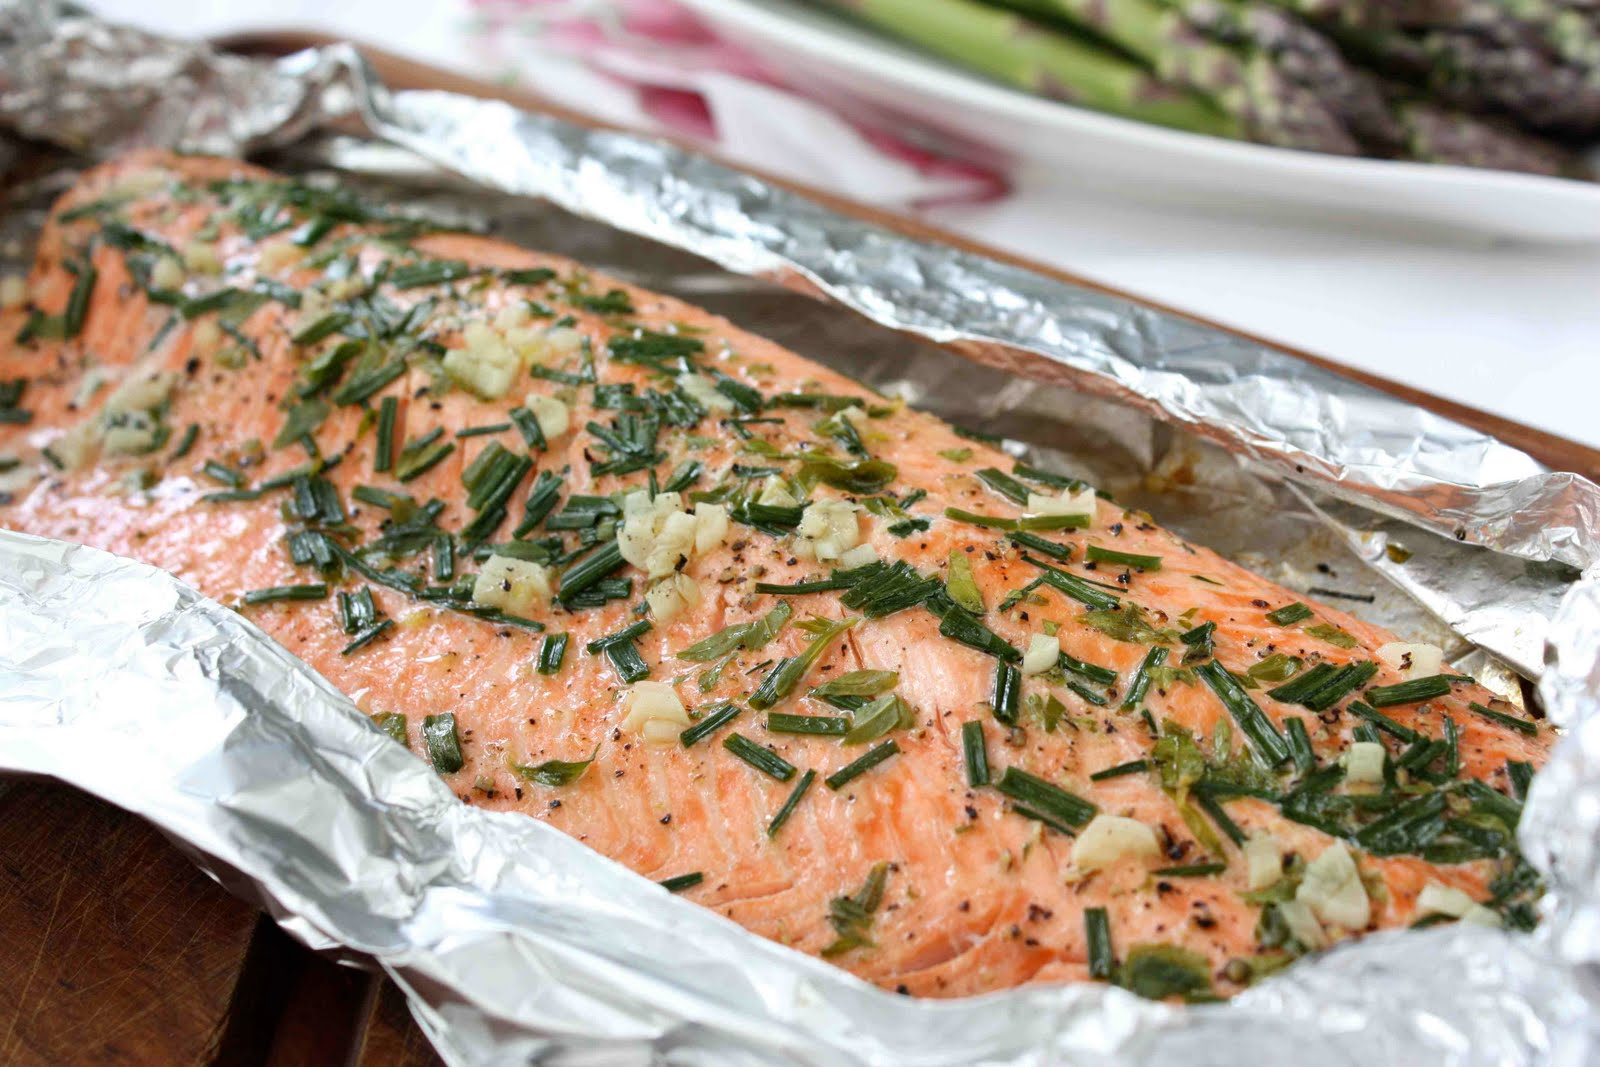 Barbecued Salmon in Foil with Tarragon, Chives & Vermouth Recipe